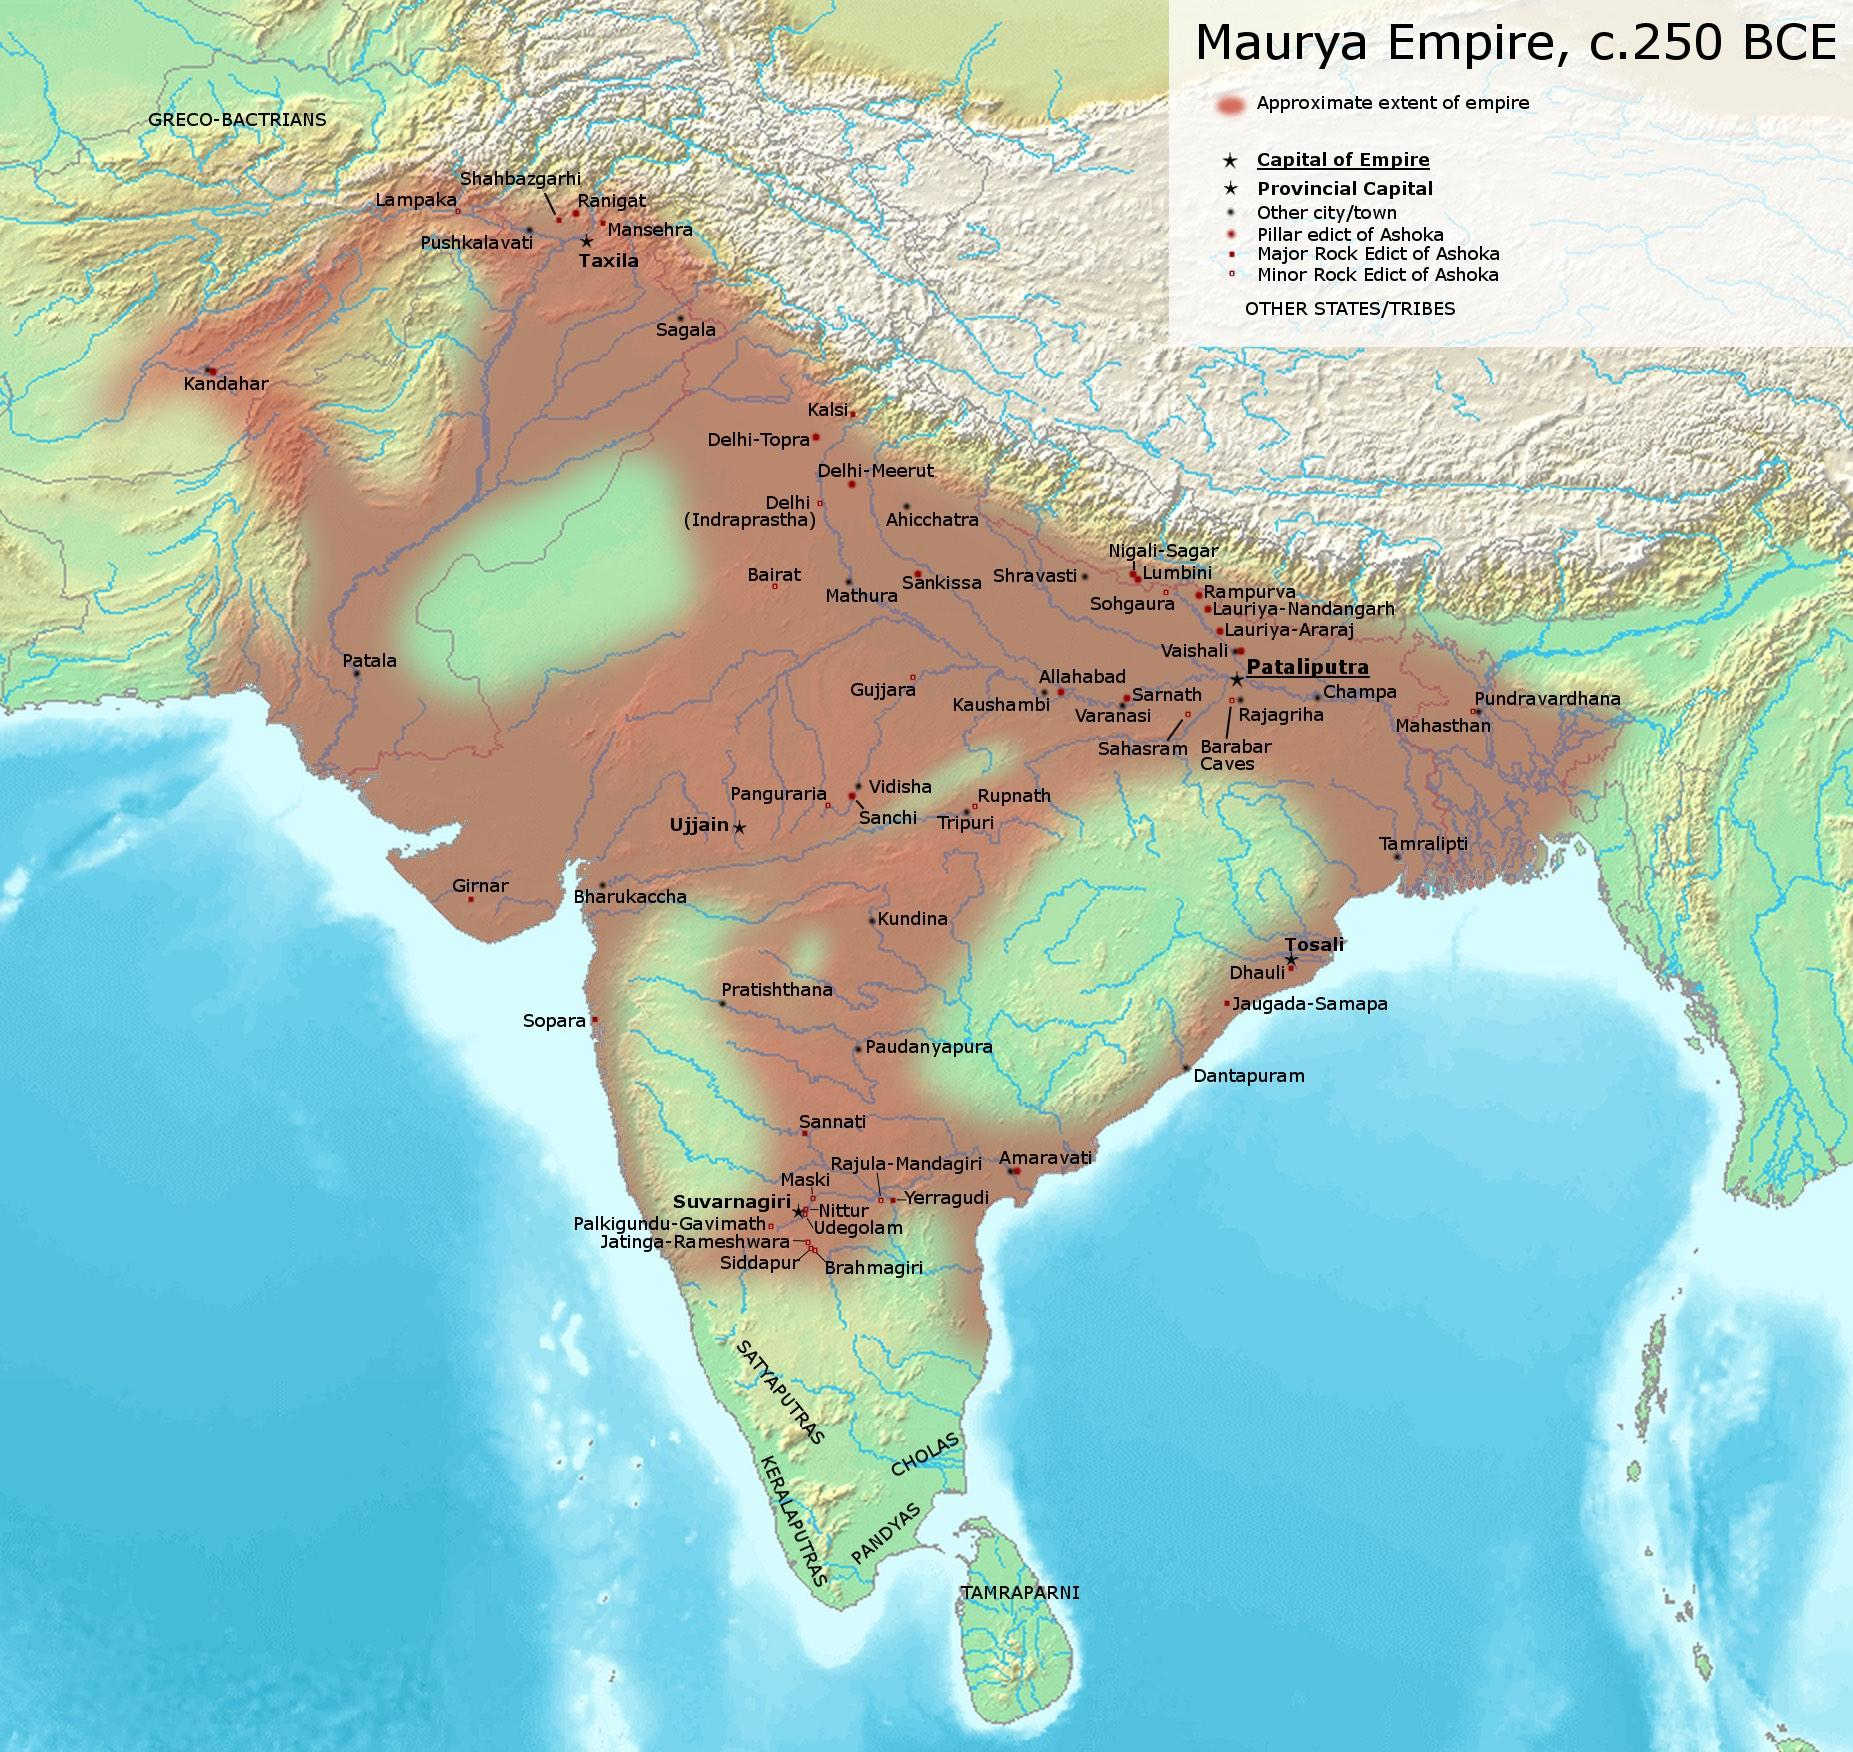 """This Map of the Mauryan Empire is based on the map provided on p. 69 of Kulke, H.; Rothermund, D. (2004), A History of India, 4th, Routledge. According to the authors, the empty areas within the boundaries of the empire were the """"autonomous and free tribes."""" – © Avantiputra7 / Wikimedia Foundation"""